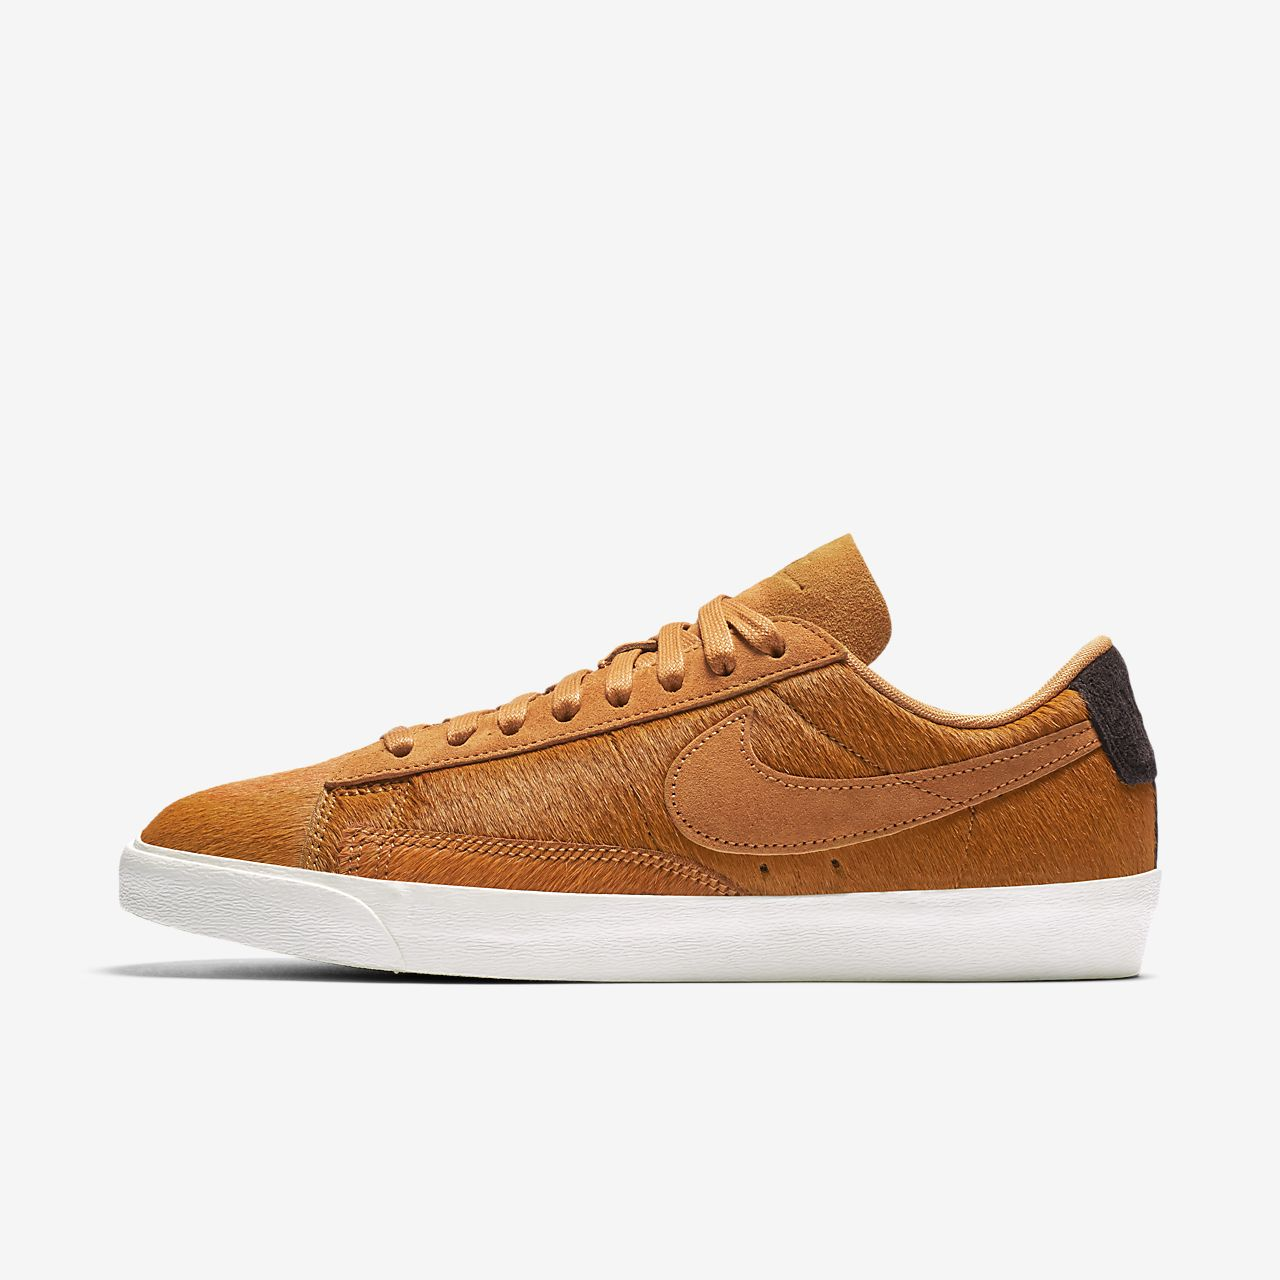 Nike Blazer Low Nike Baskets Lx